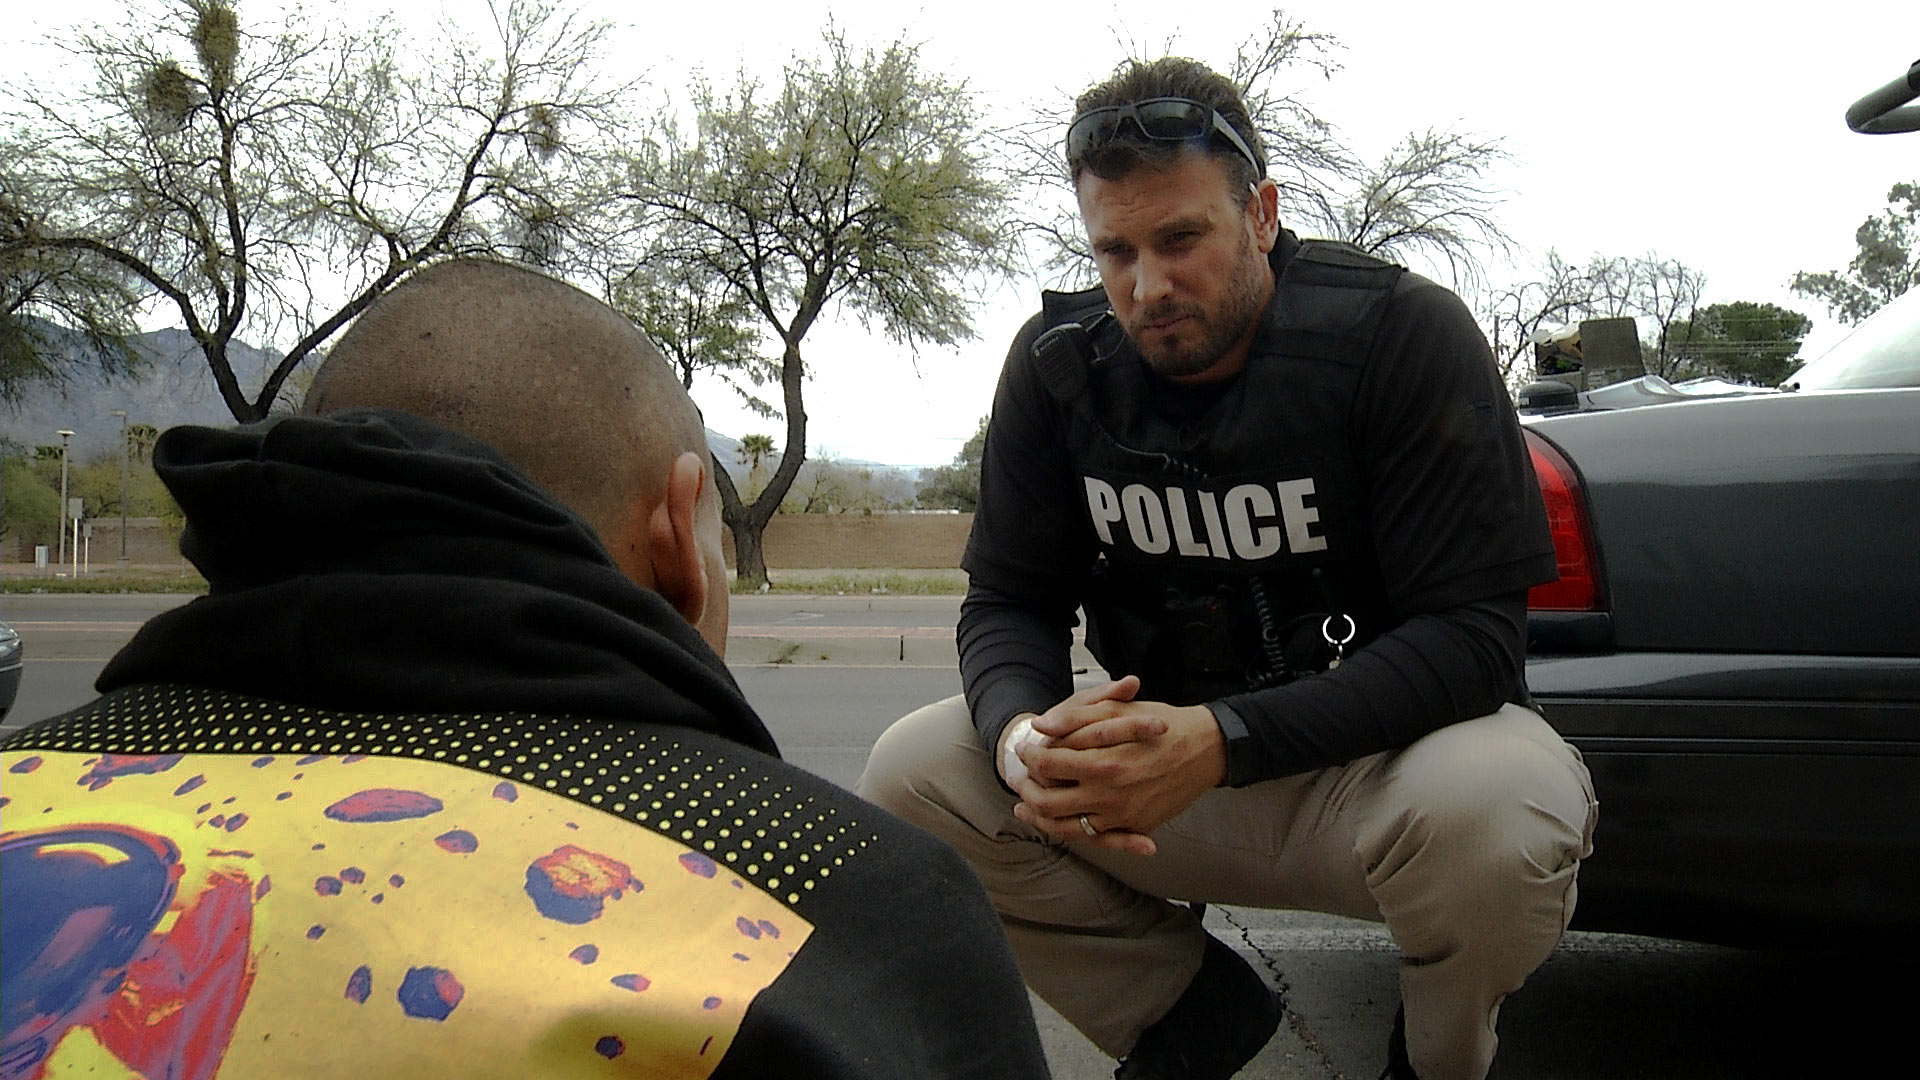 Tucson Police officer Chris Ciarvella speaks to a man about the department's Deflection Program that allows officers to take people to treatment for drug-related crimes instead of arresting them. On March 10, 2020, Ciarvella stopped the man while responding to a shoplifting call and discovered he had drug paraphernalia. The man accepted the offer to enroll in treatment.